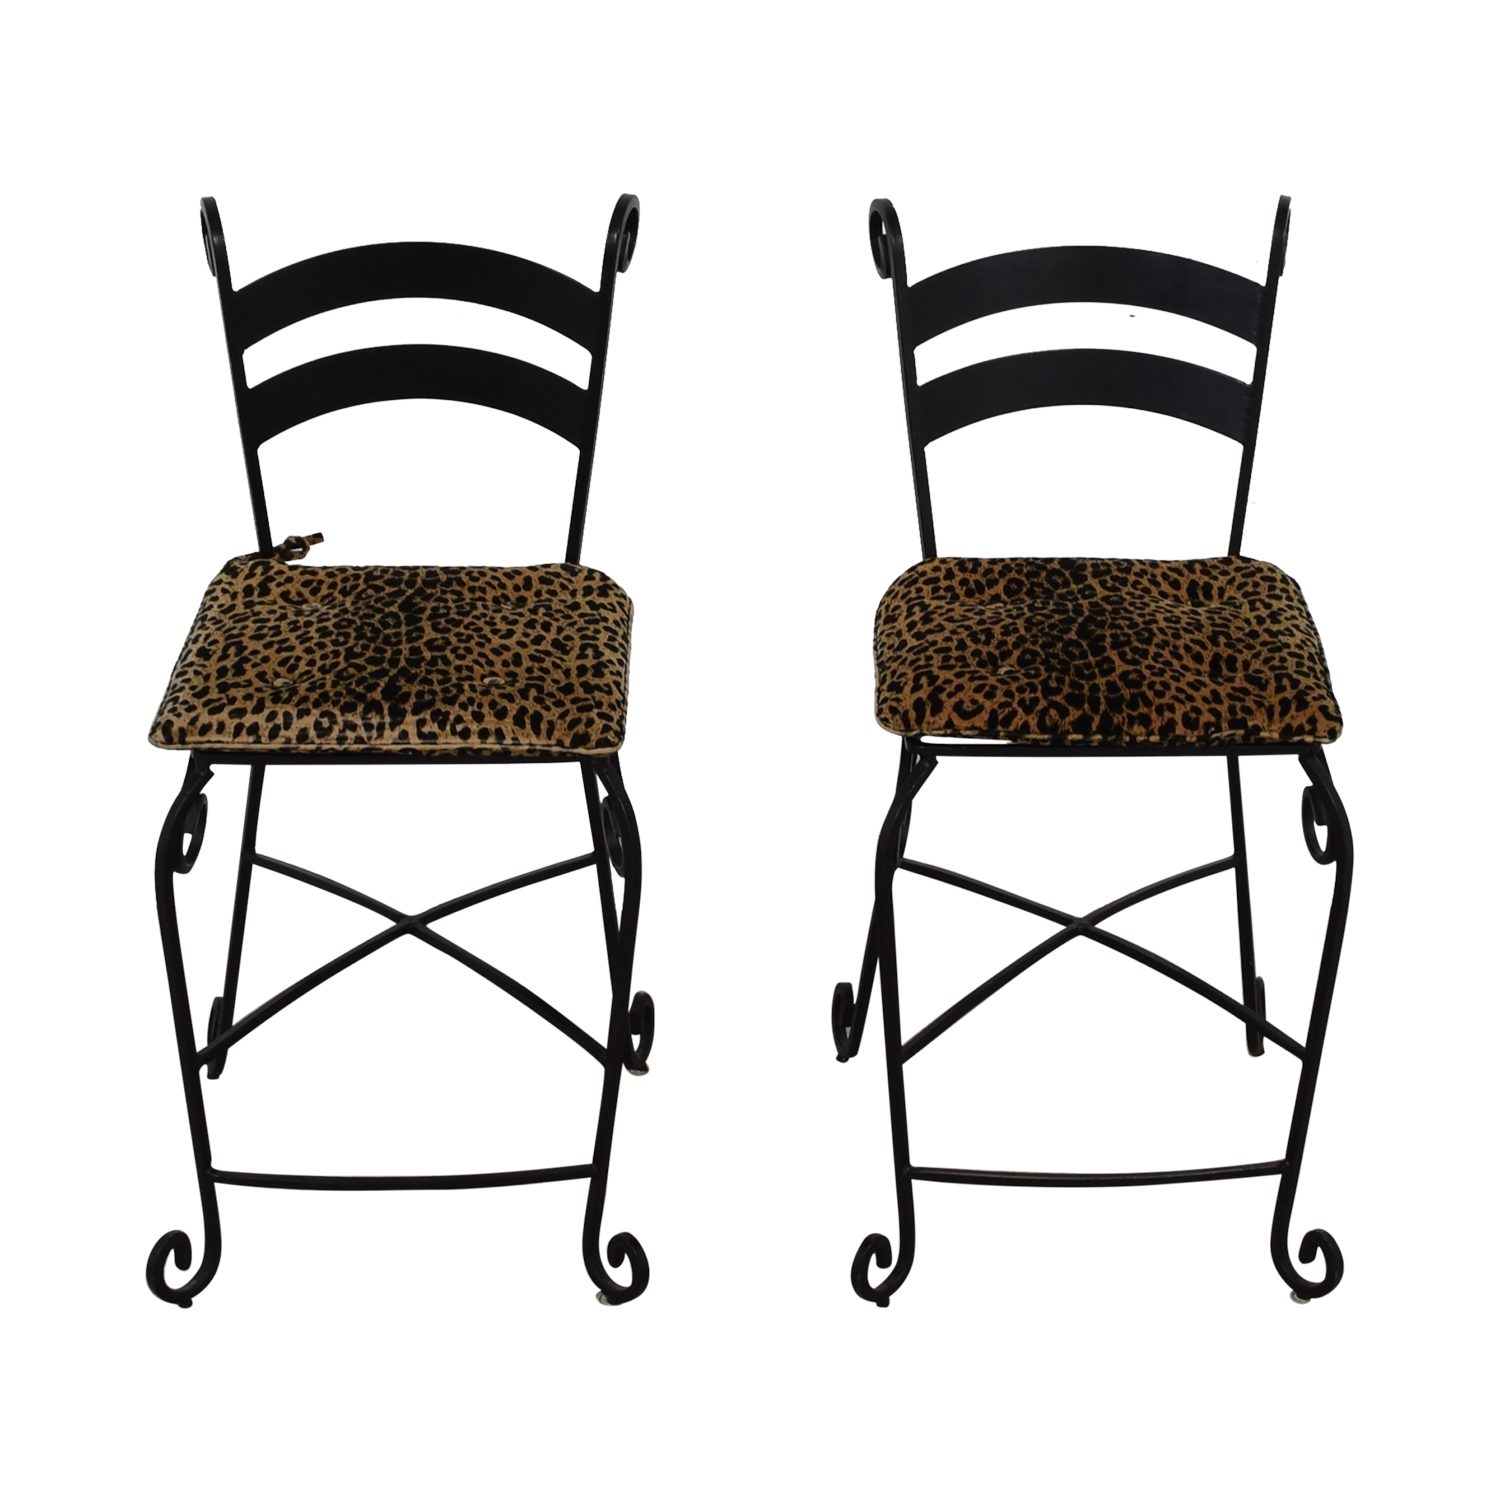 Leopard Counter Height Black Wrought Iron Stools used